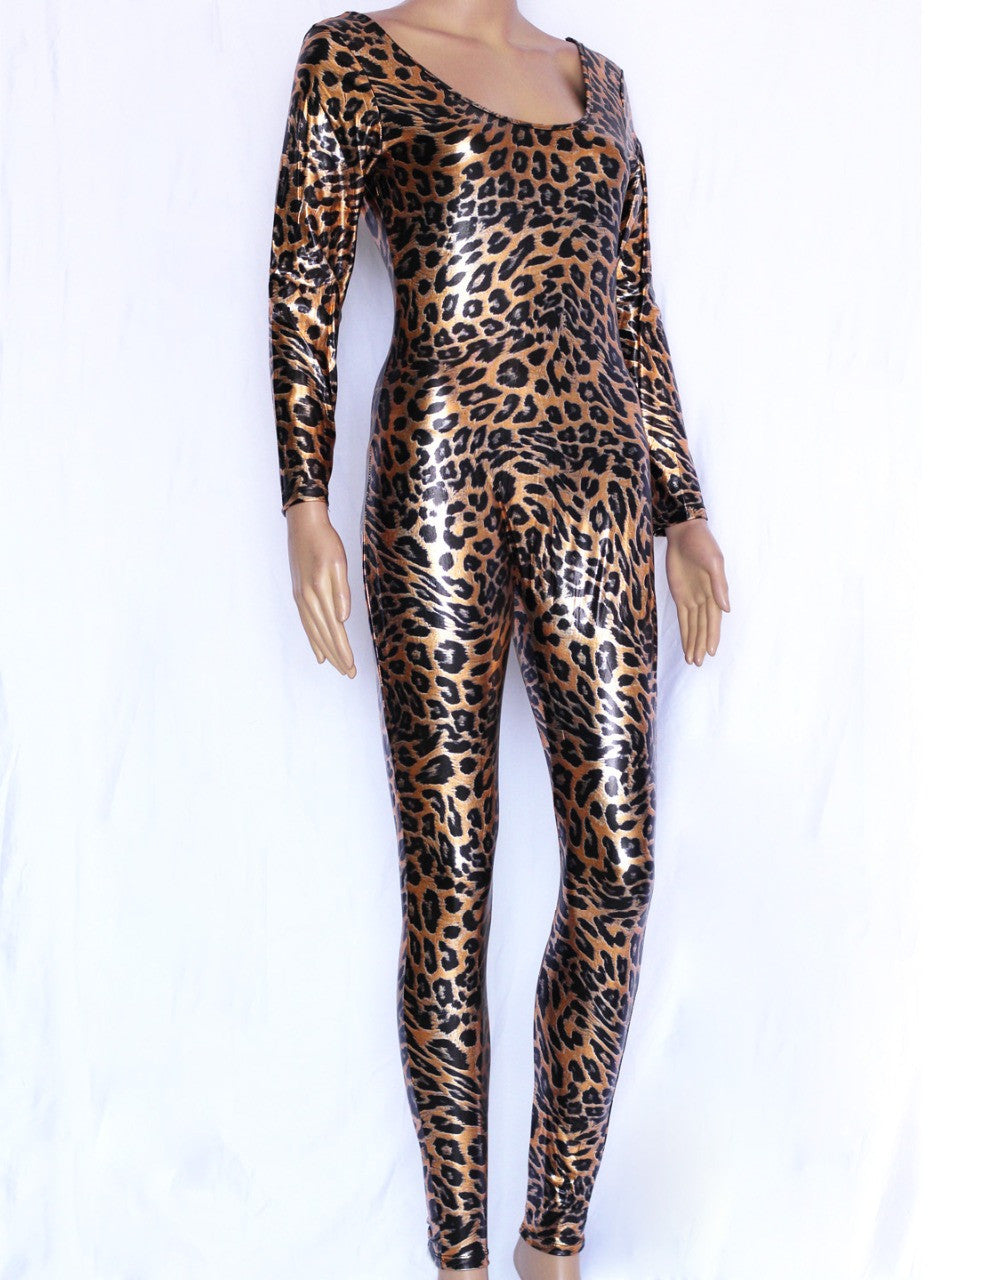 Sexy Leopard Animal Catsuit Costume - Sins & Temptations